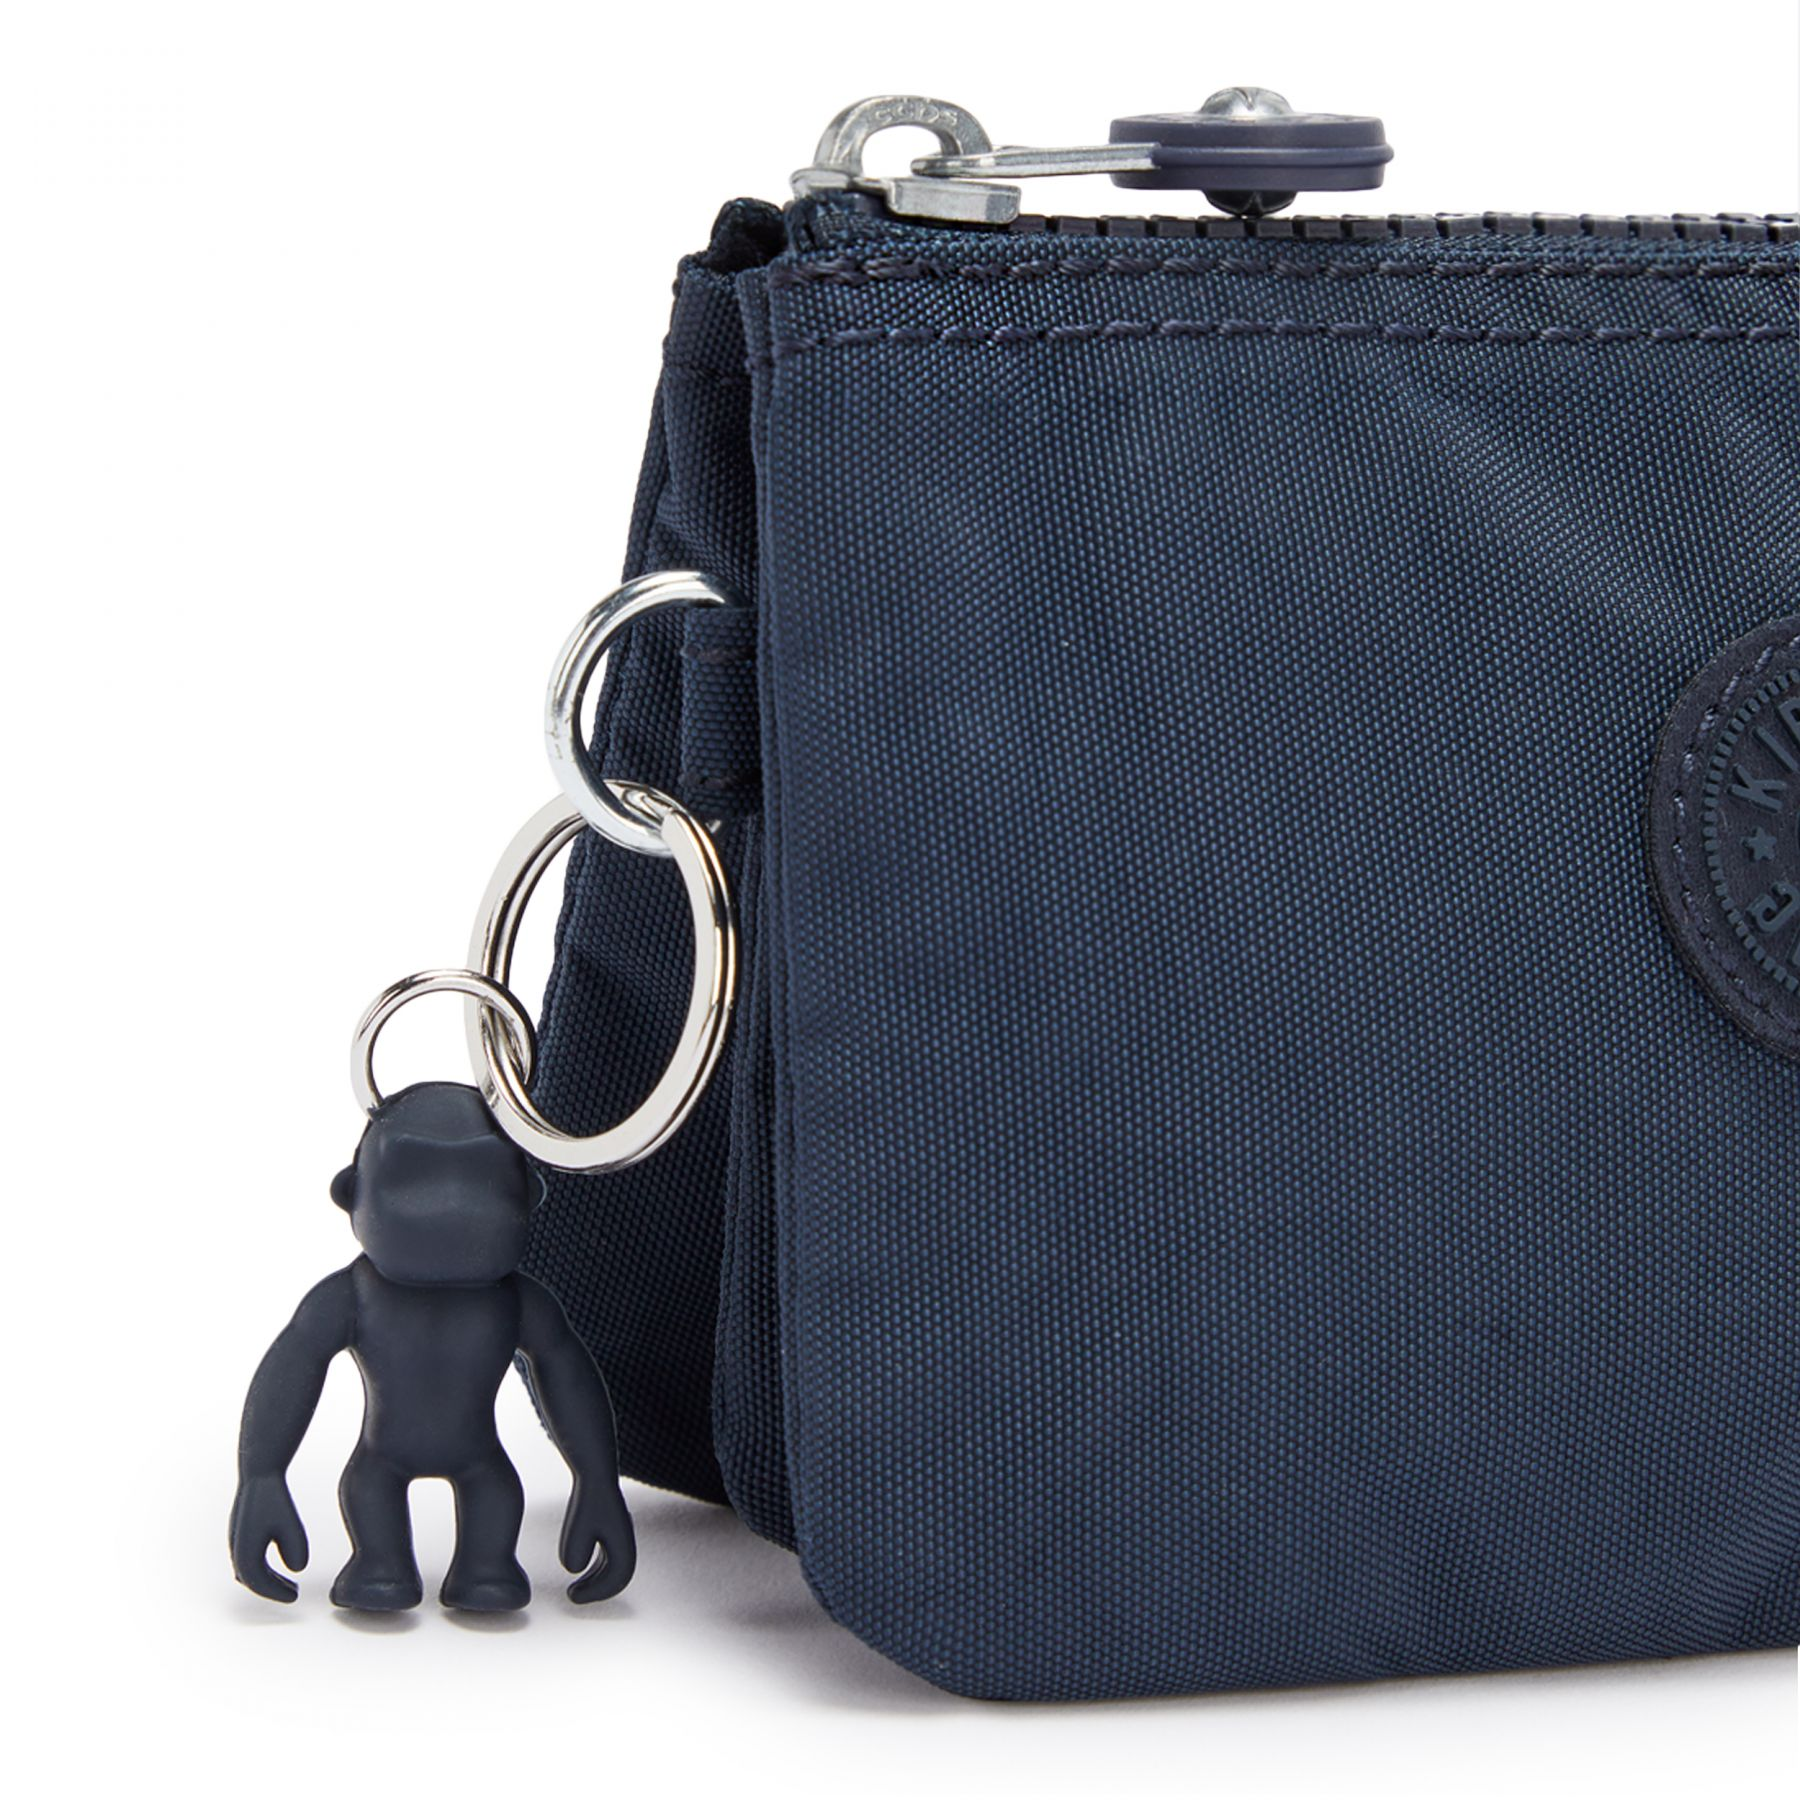 CREATIVITY S ACCESSORIES by Kipling